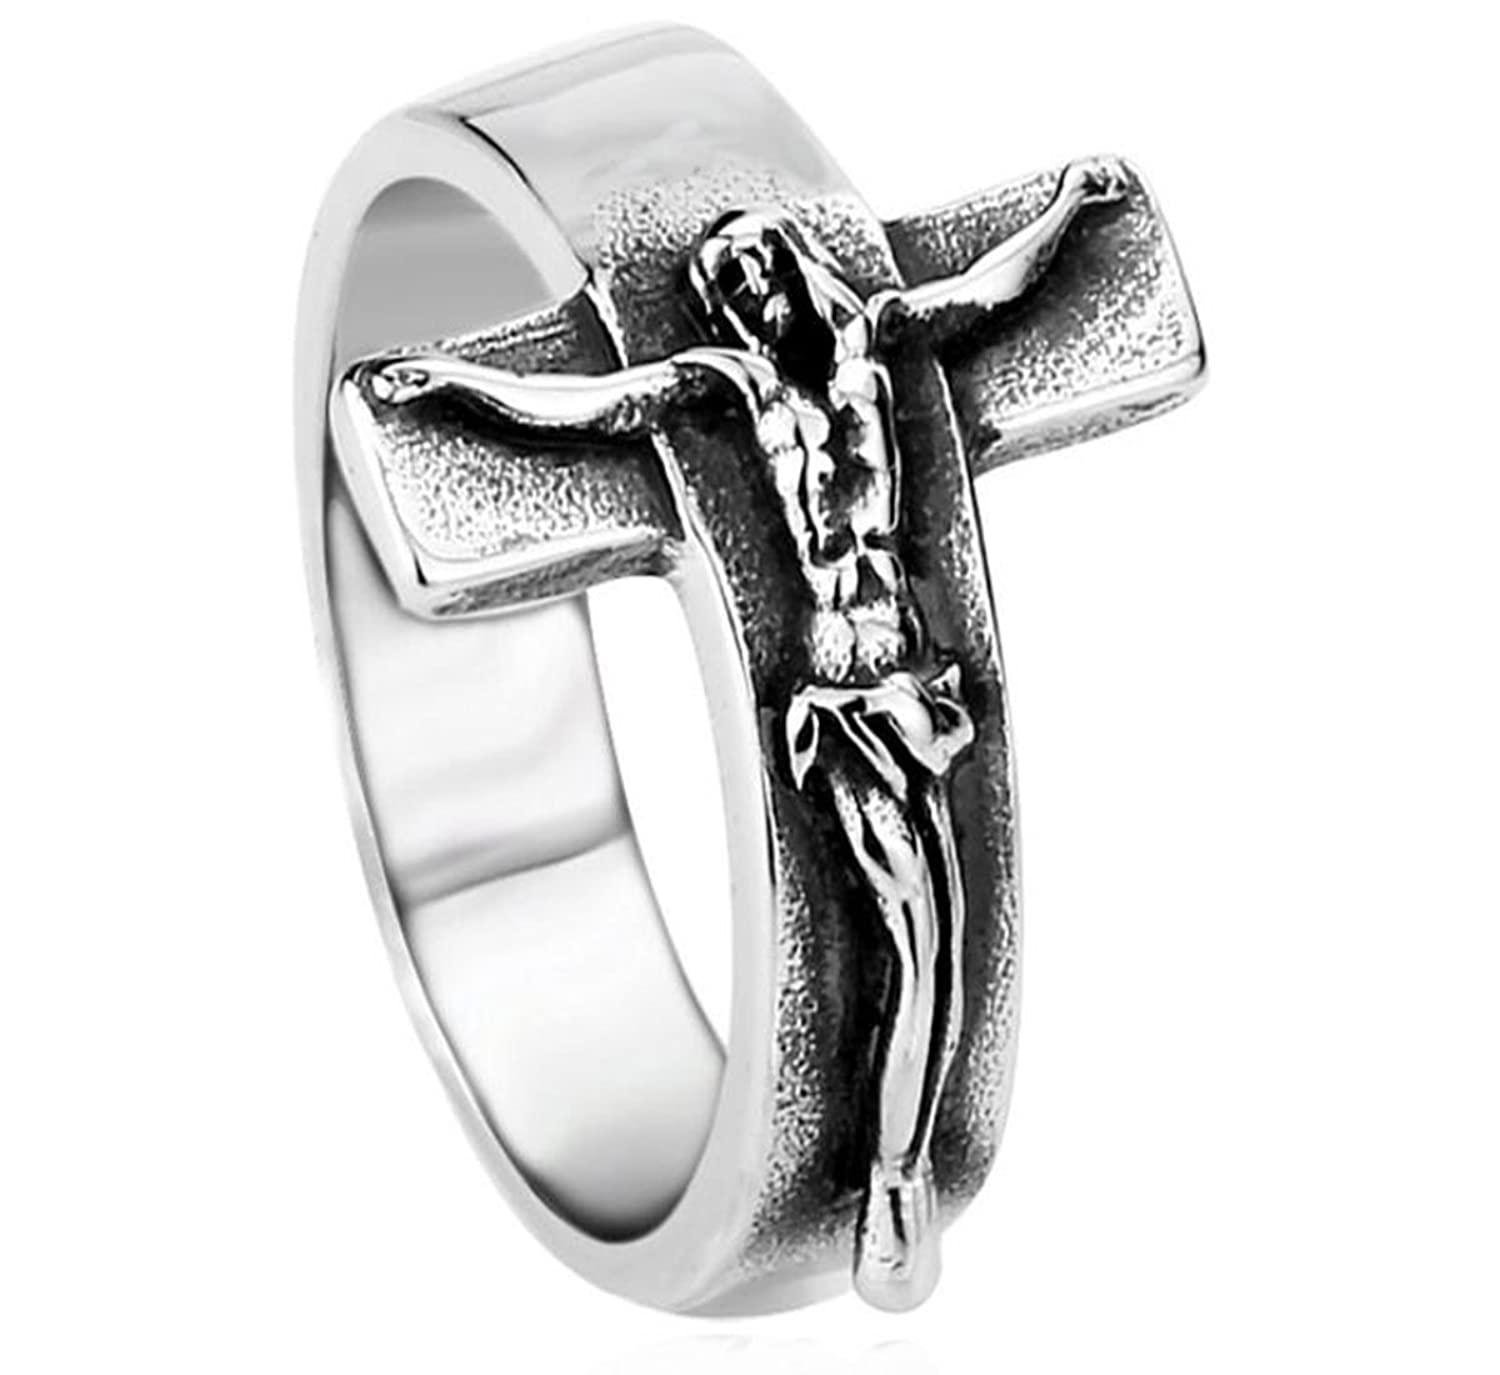 cross dp jesus solid amazon vintage design crucifix steel sterling ring rings open com band sunscsc silver stainless